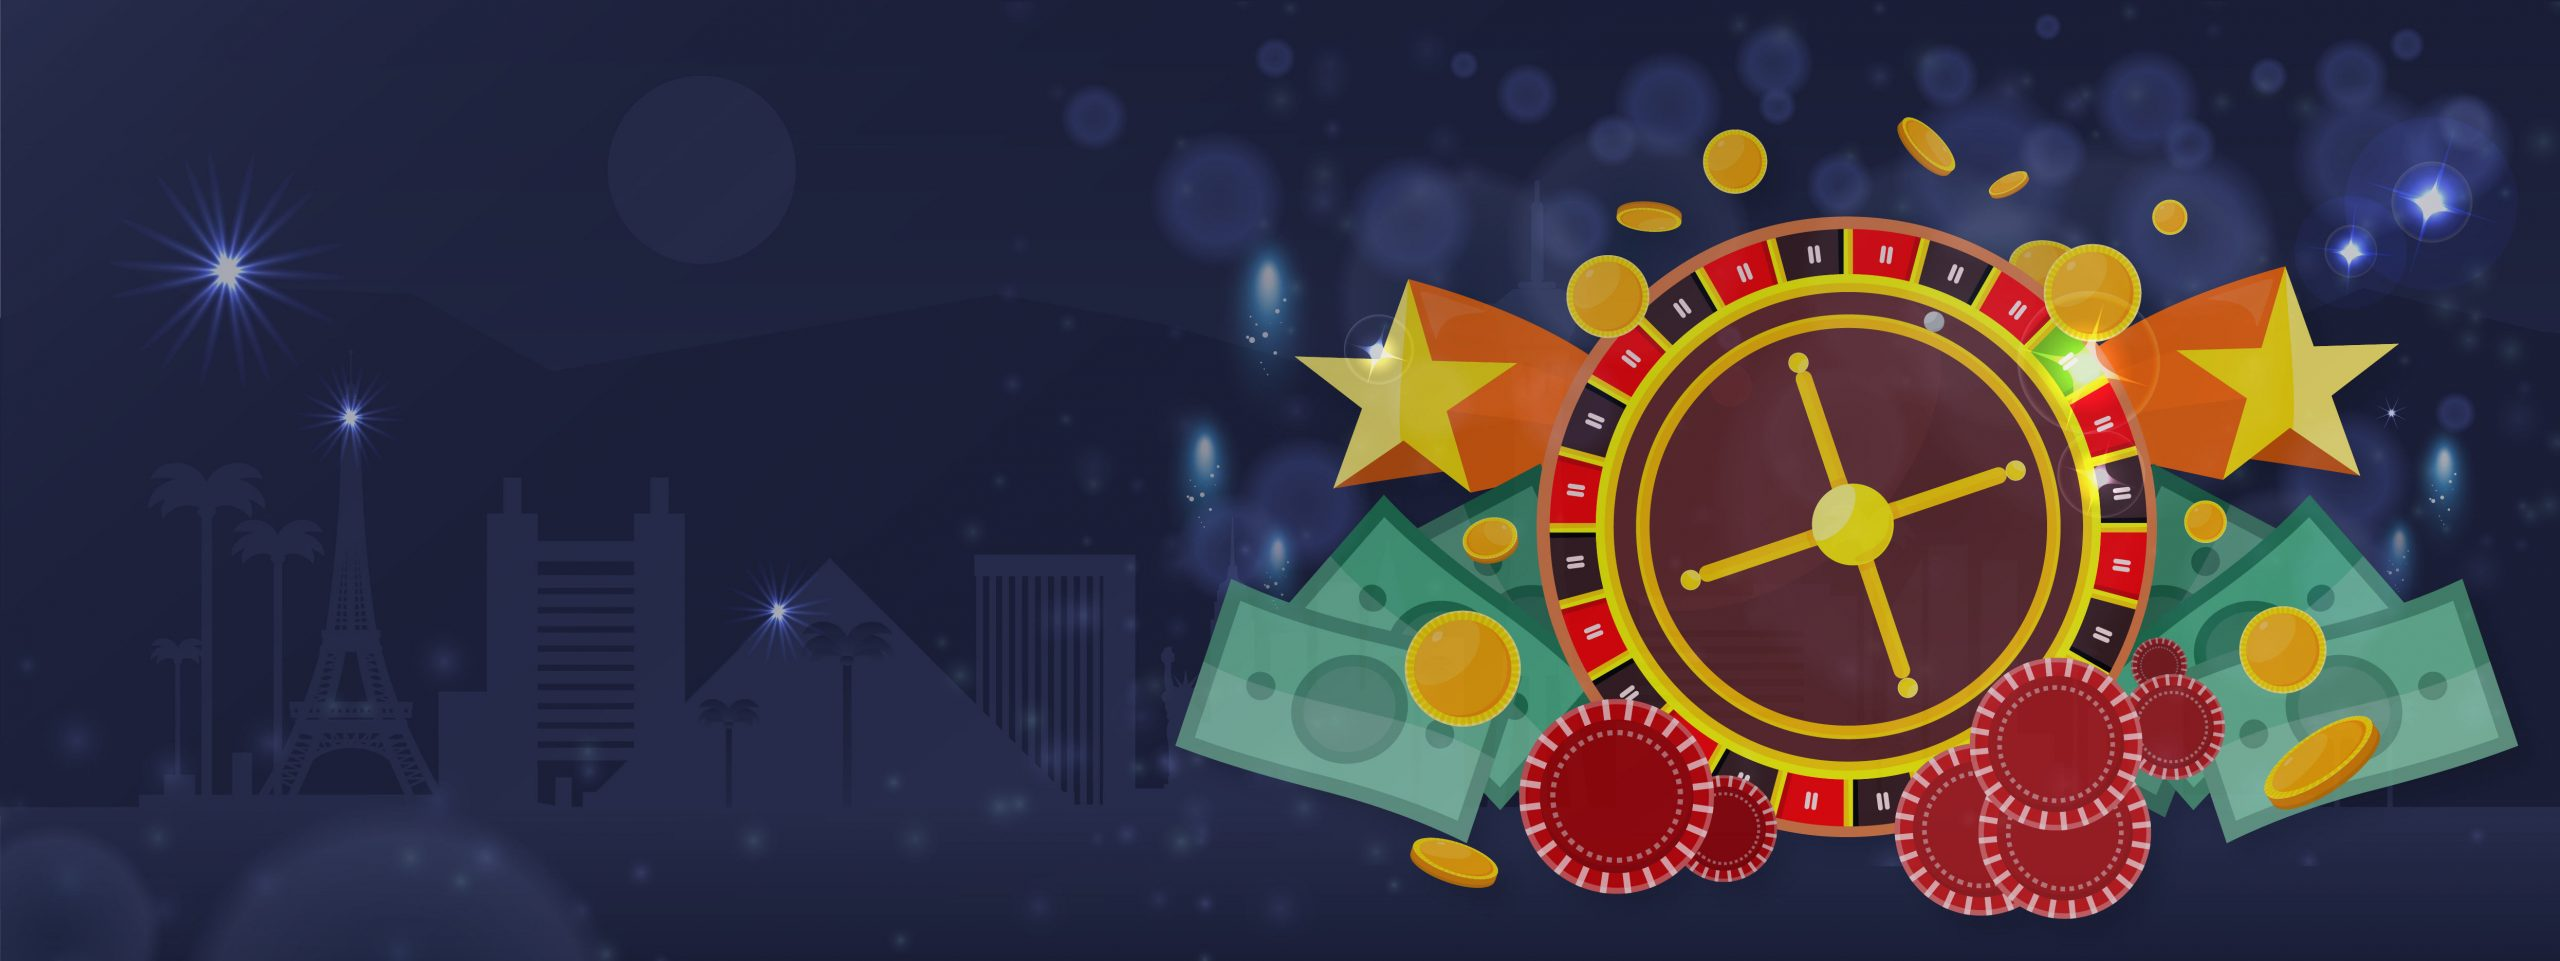 We Know The Online Casino Best Welcome Offer Available to New Players